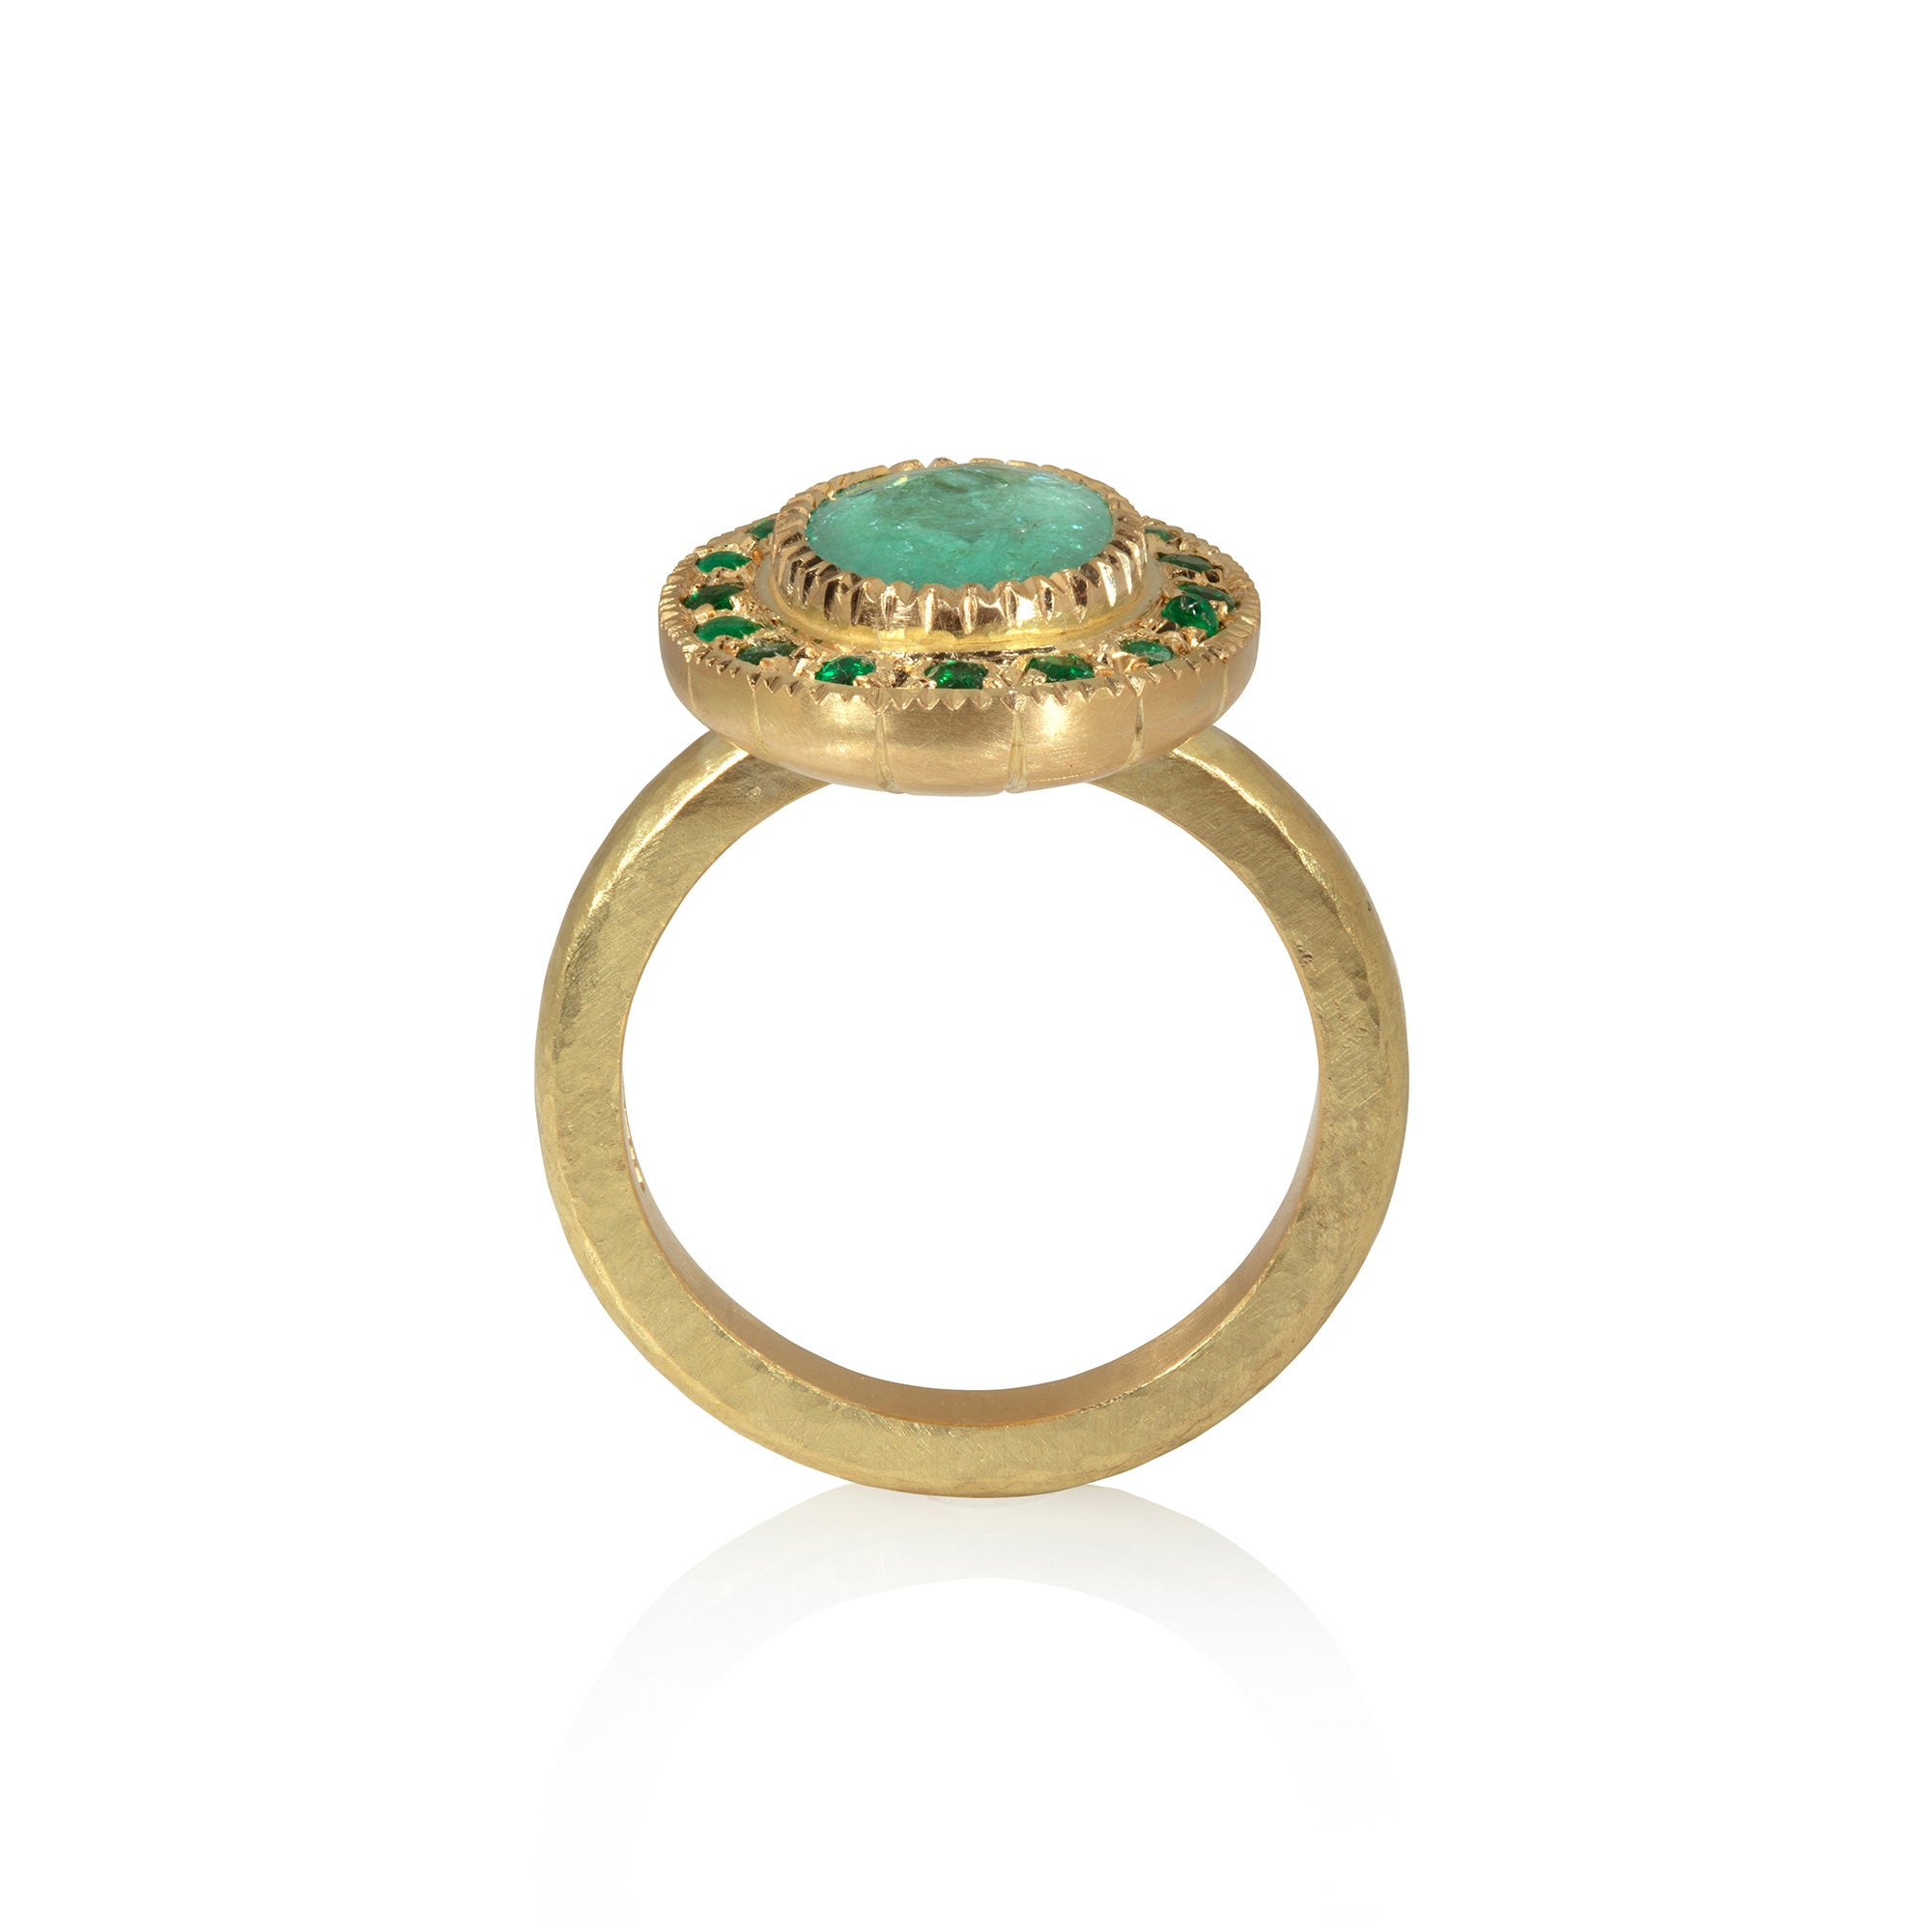 Side on view of Paraiba tourmaline and emerald ring